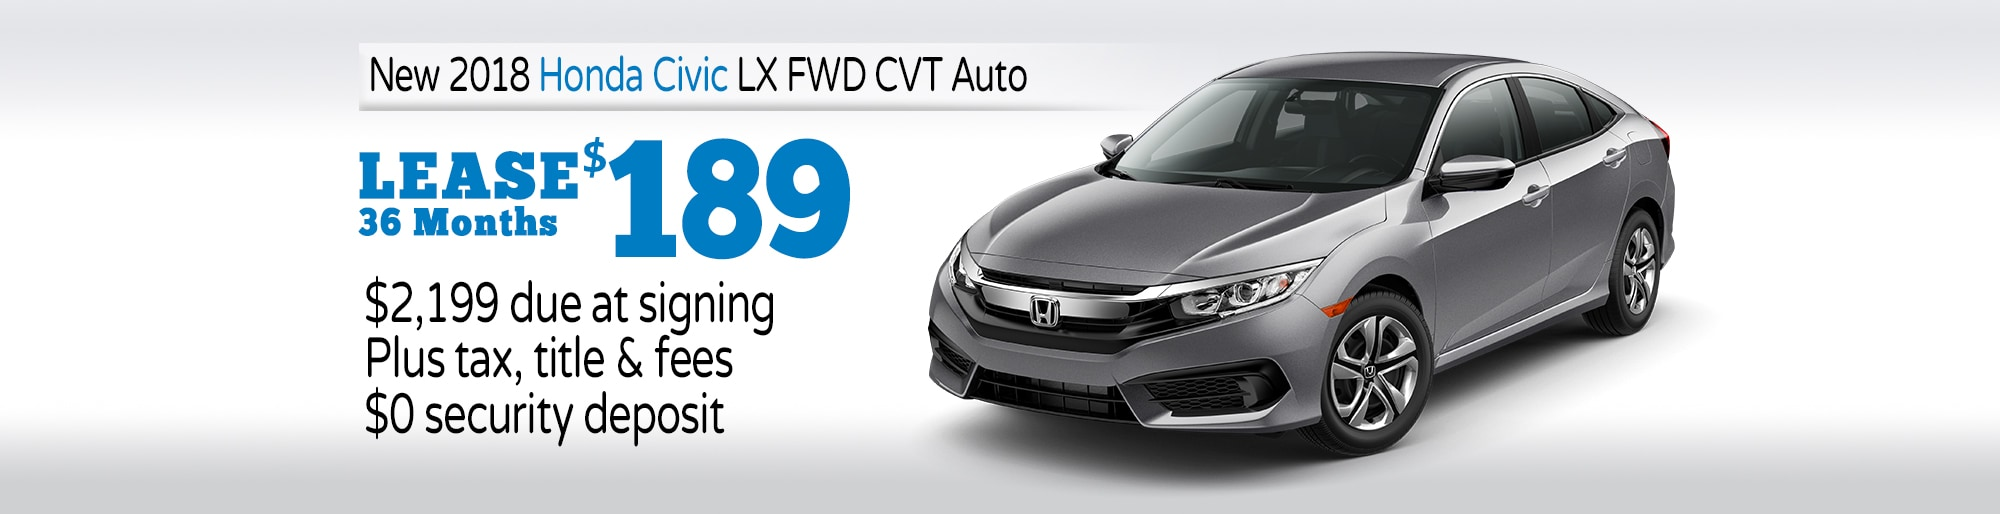 Used Hondas For Sale Near Me >> Jeff Wyler Honda Dealerships | New and Used Honda Dealer in Kentucky Ohio Indiana